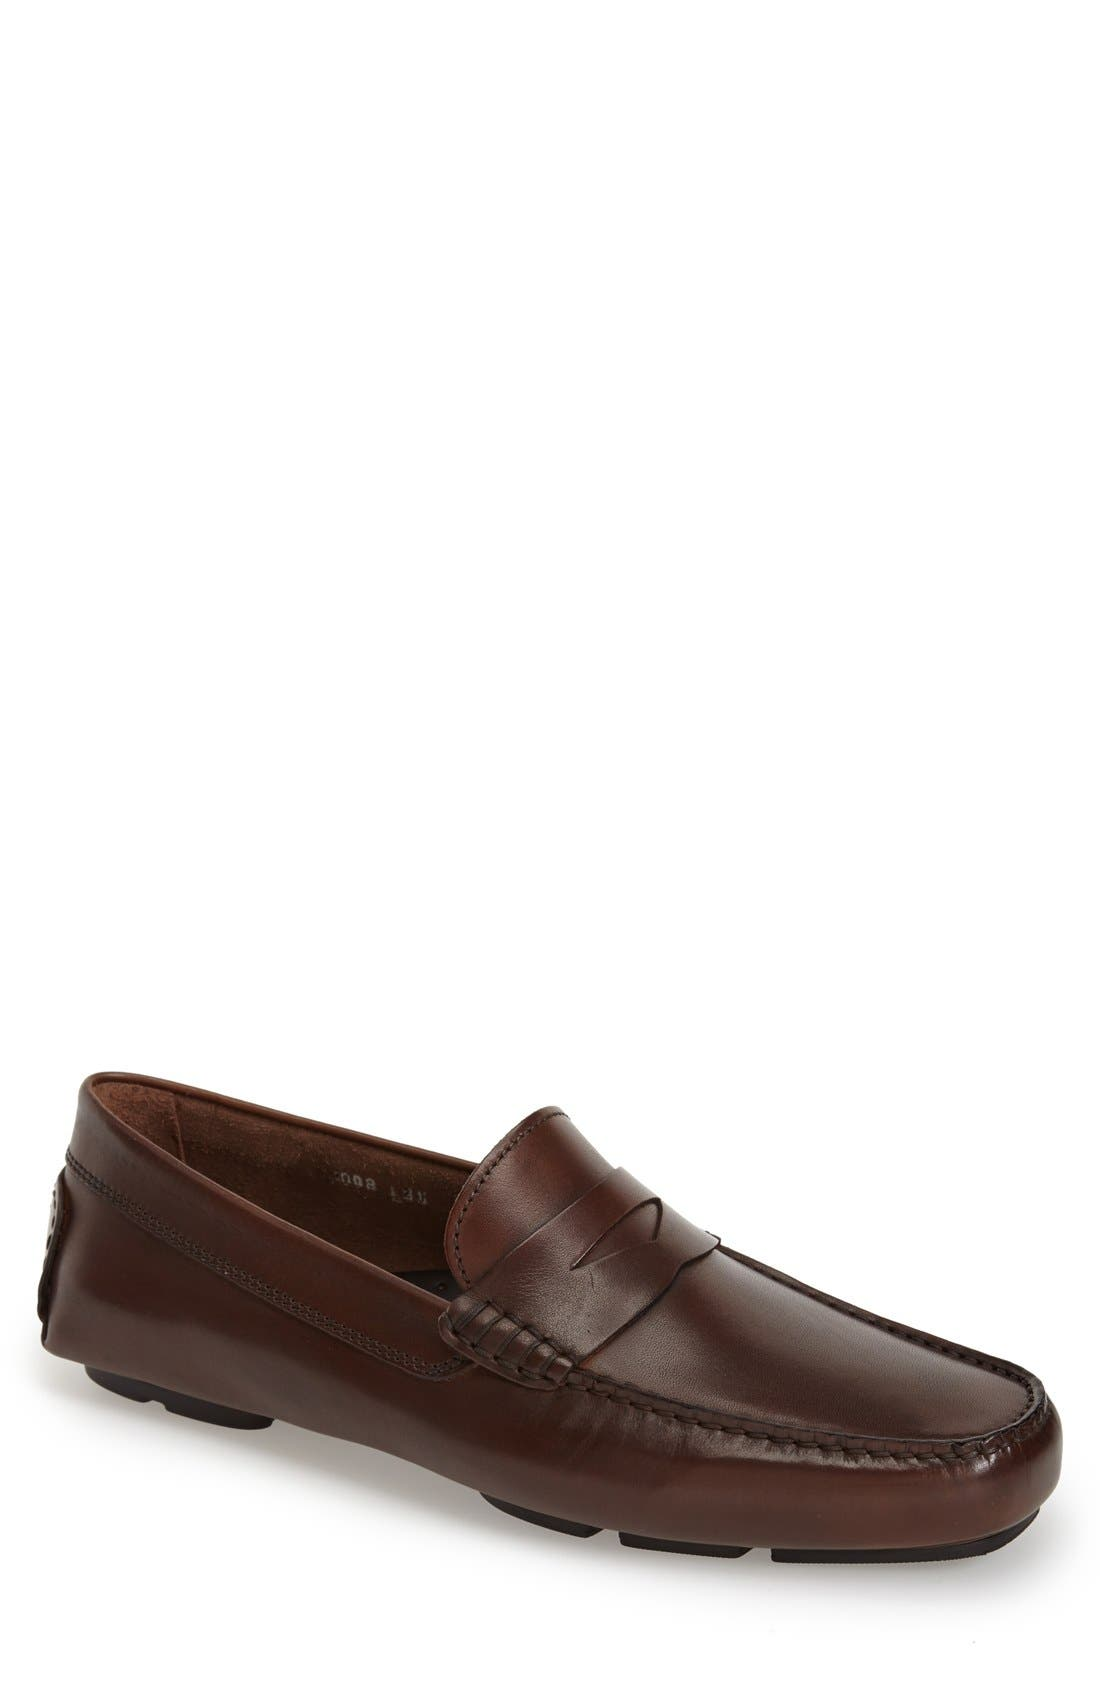 Alternate Image 1 Selected - To Boot New York 'Harper' Driving Shoe (Men)